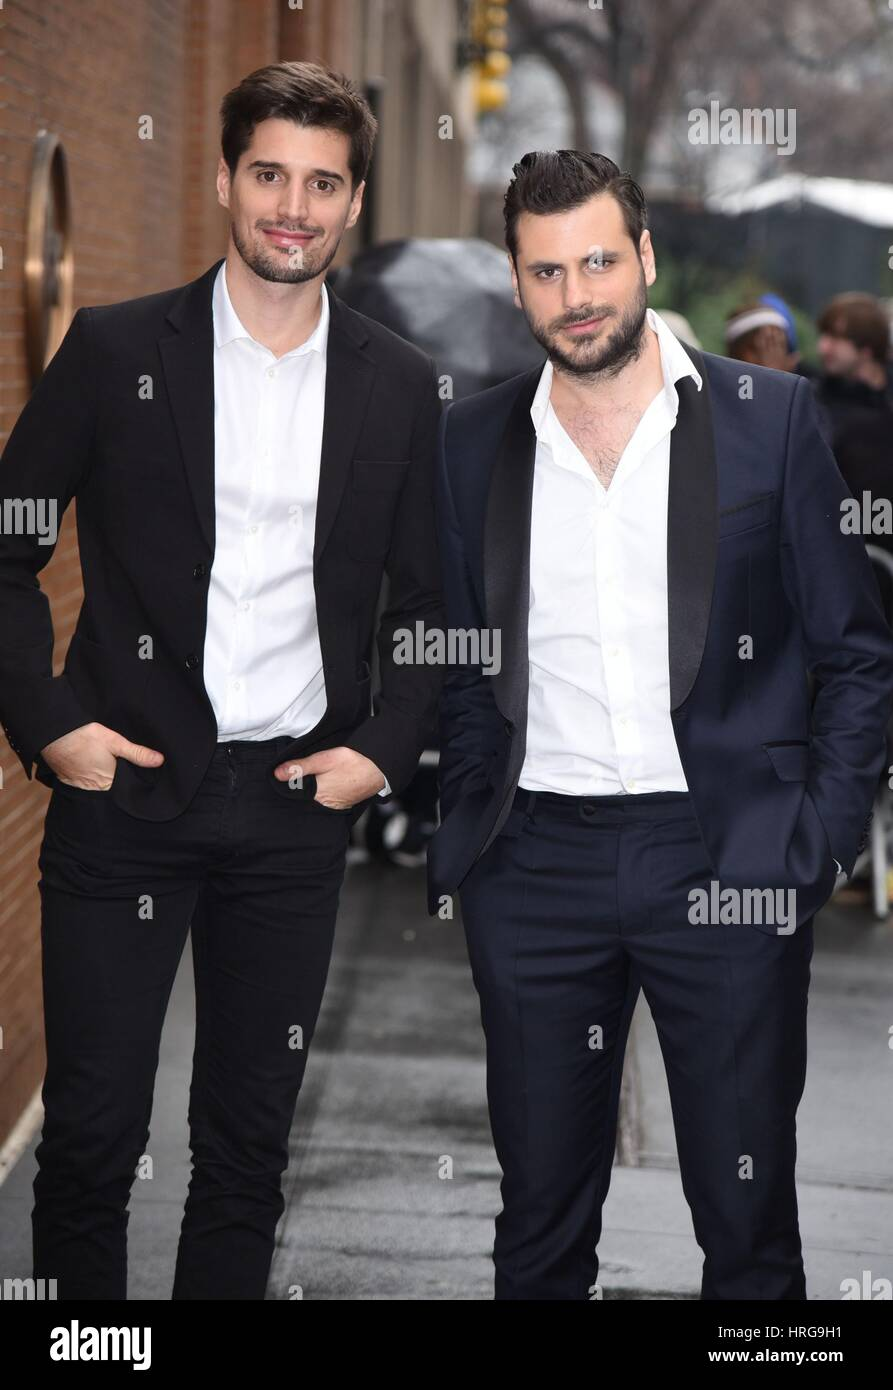 Luka Sulic And Stjepan Hauser Stock Photos & Luka Sulic And